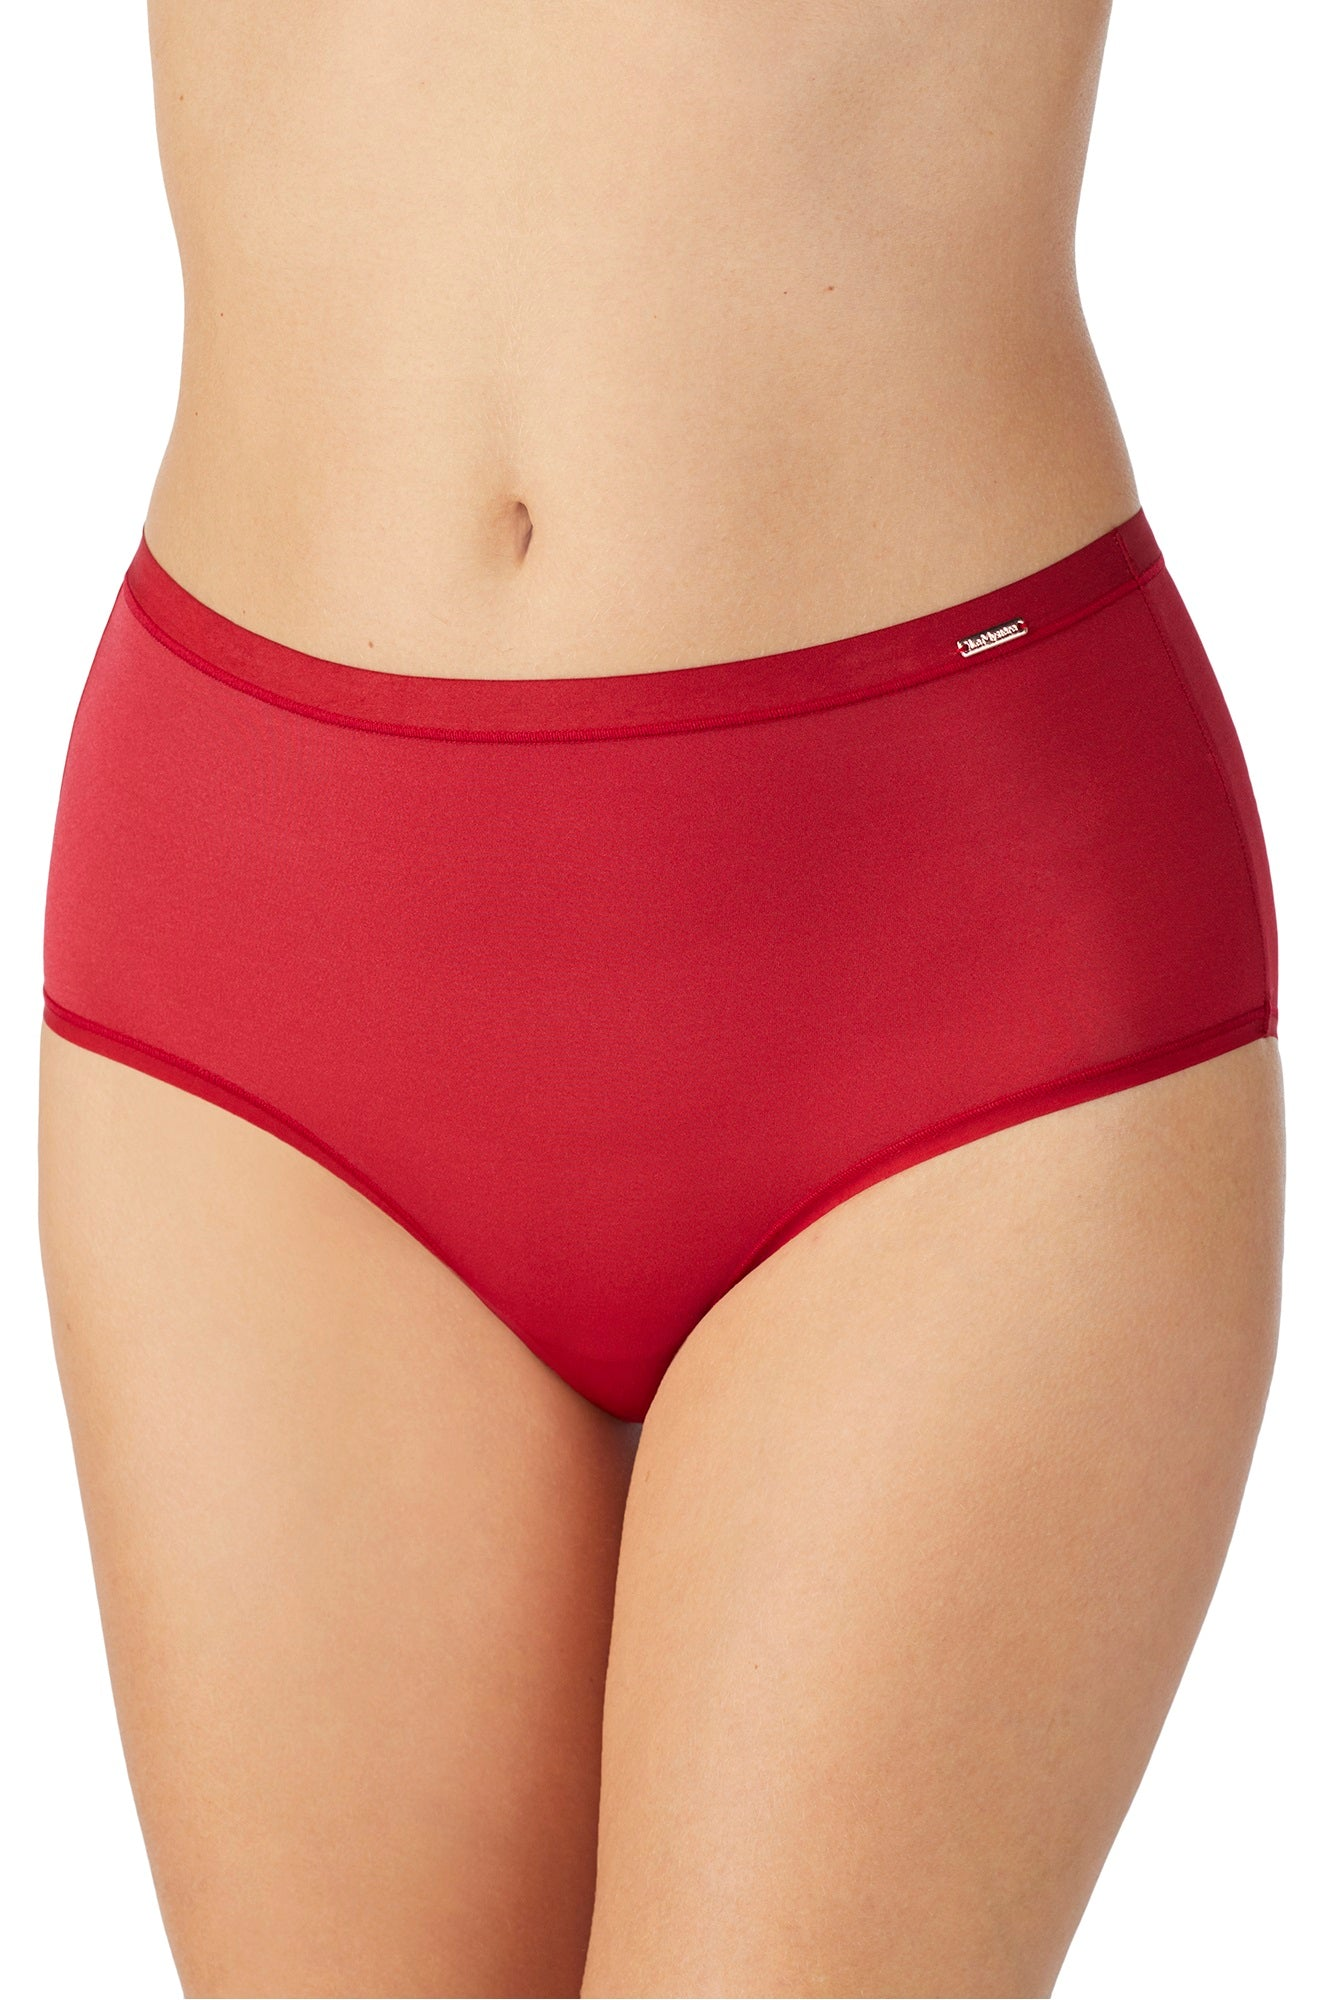 Infinite Comfort Brief - Ruby